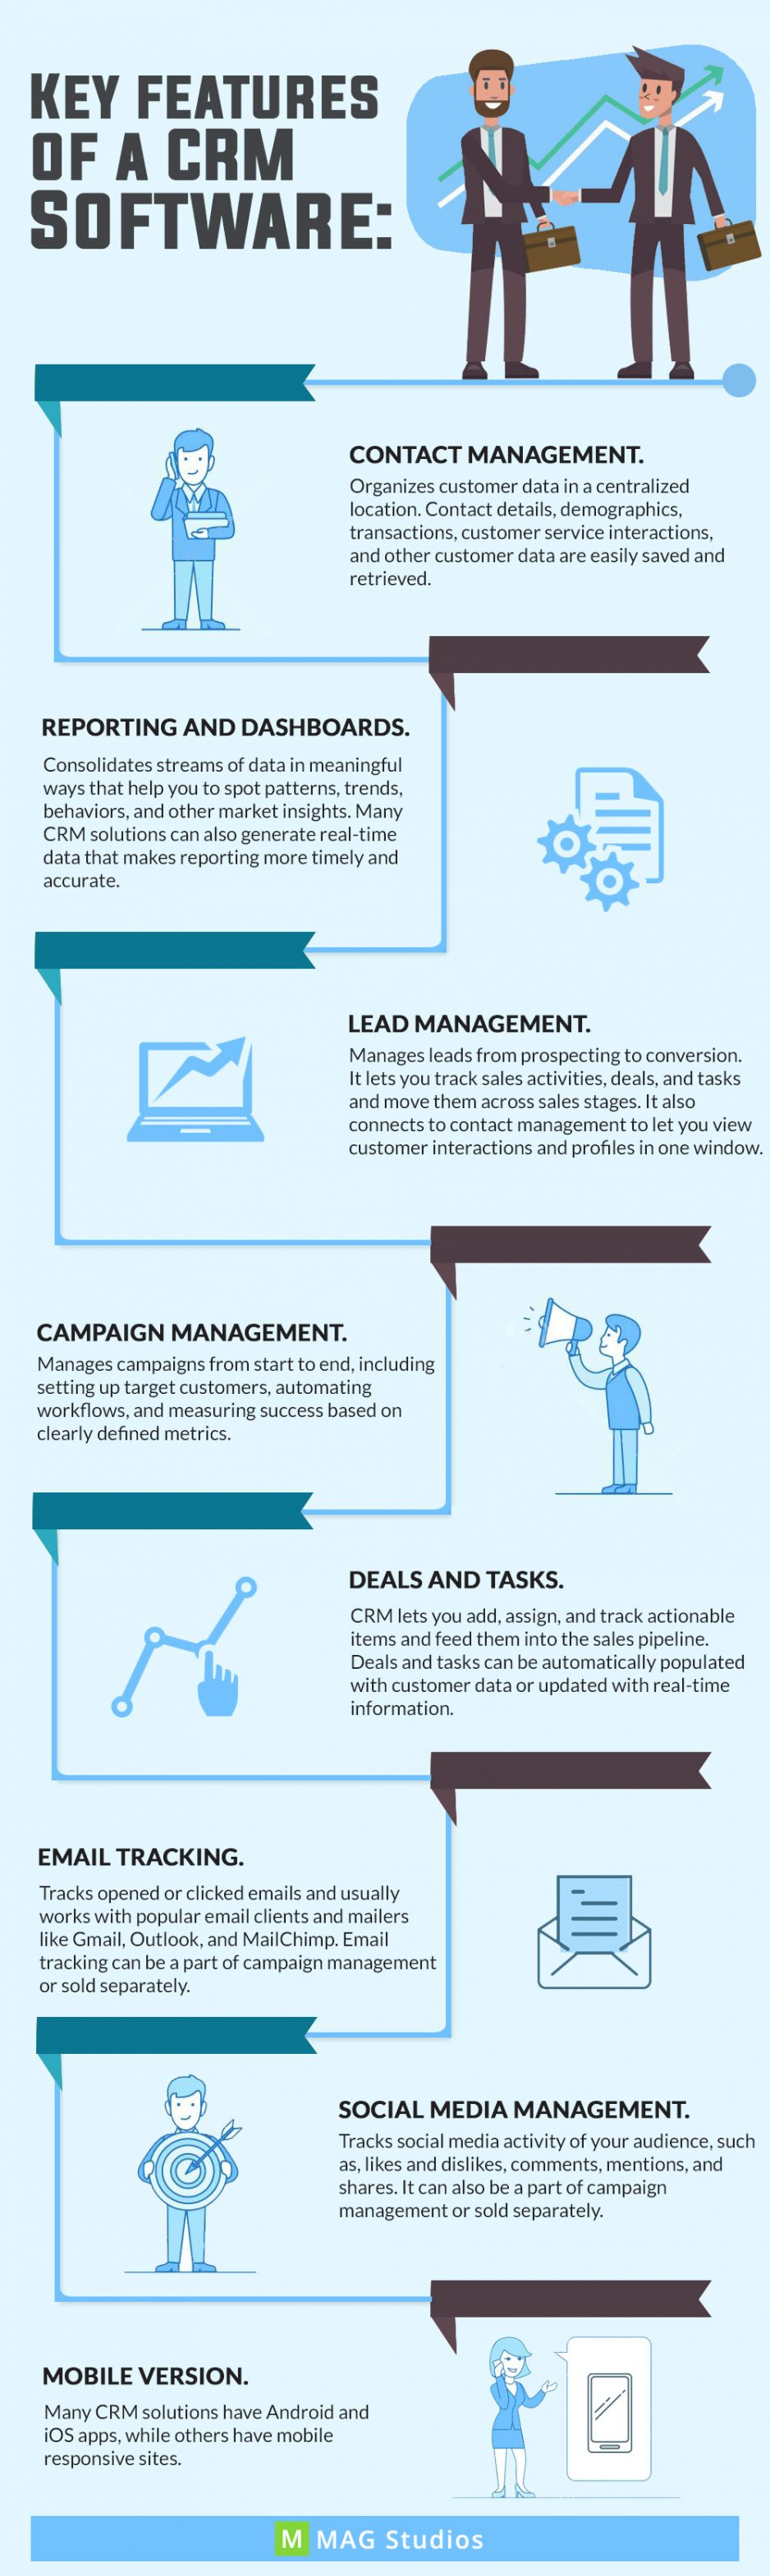 Best Features of CRM systems